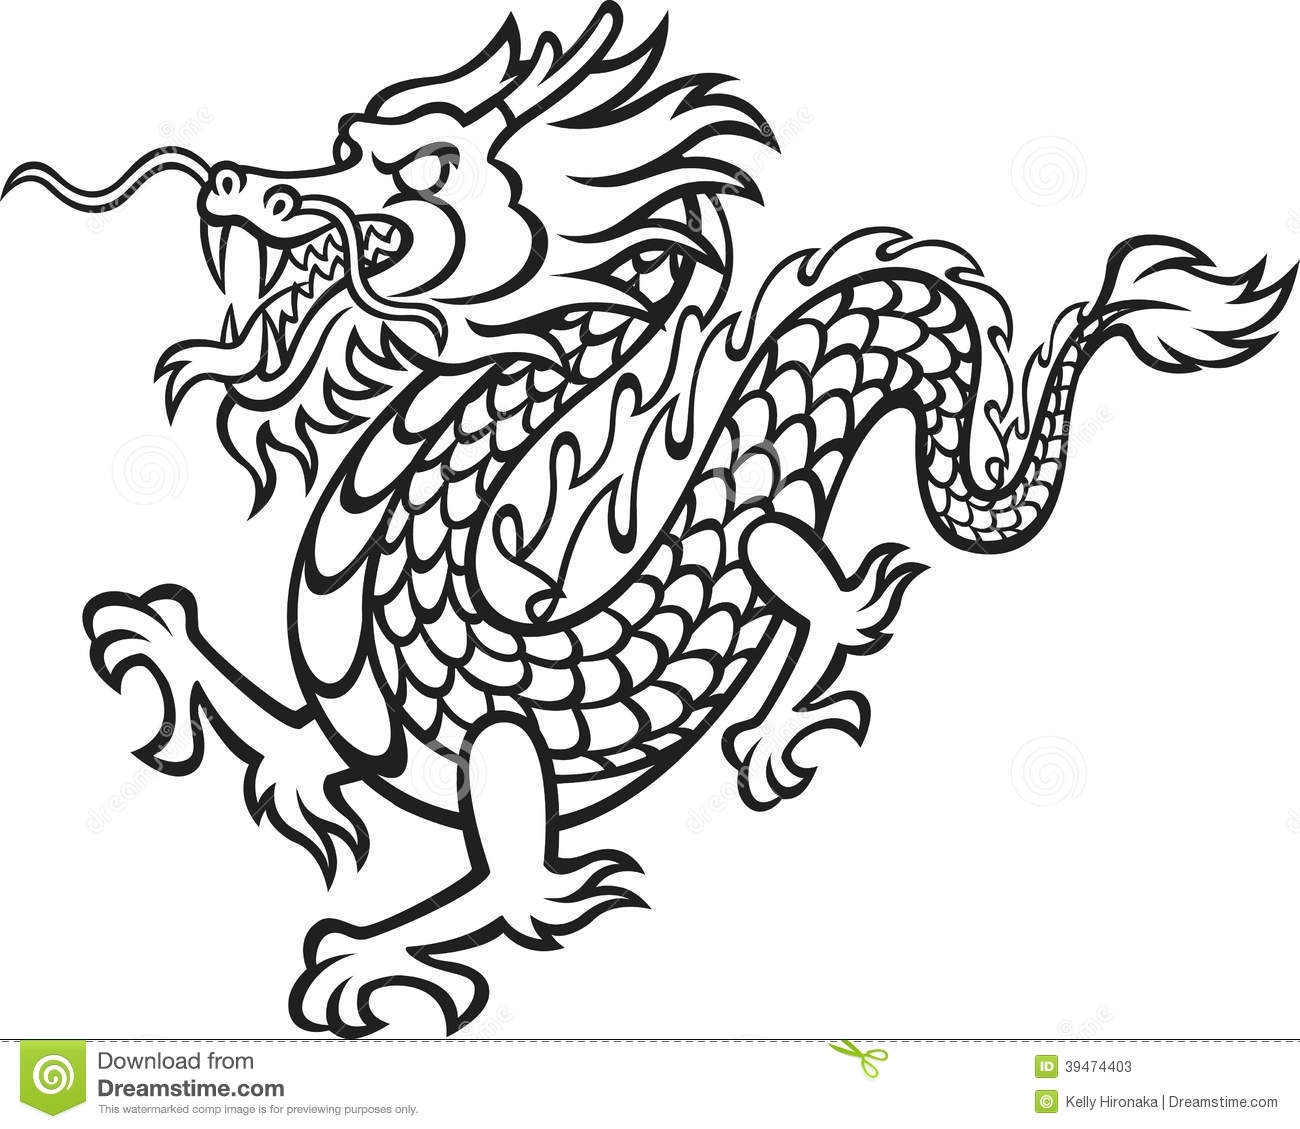 20 United States Flag Coloring Page Images | FREE COLORING PAGES ...